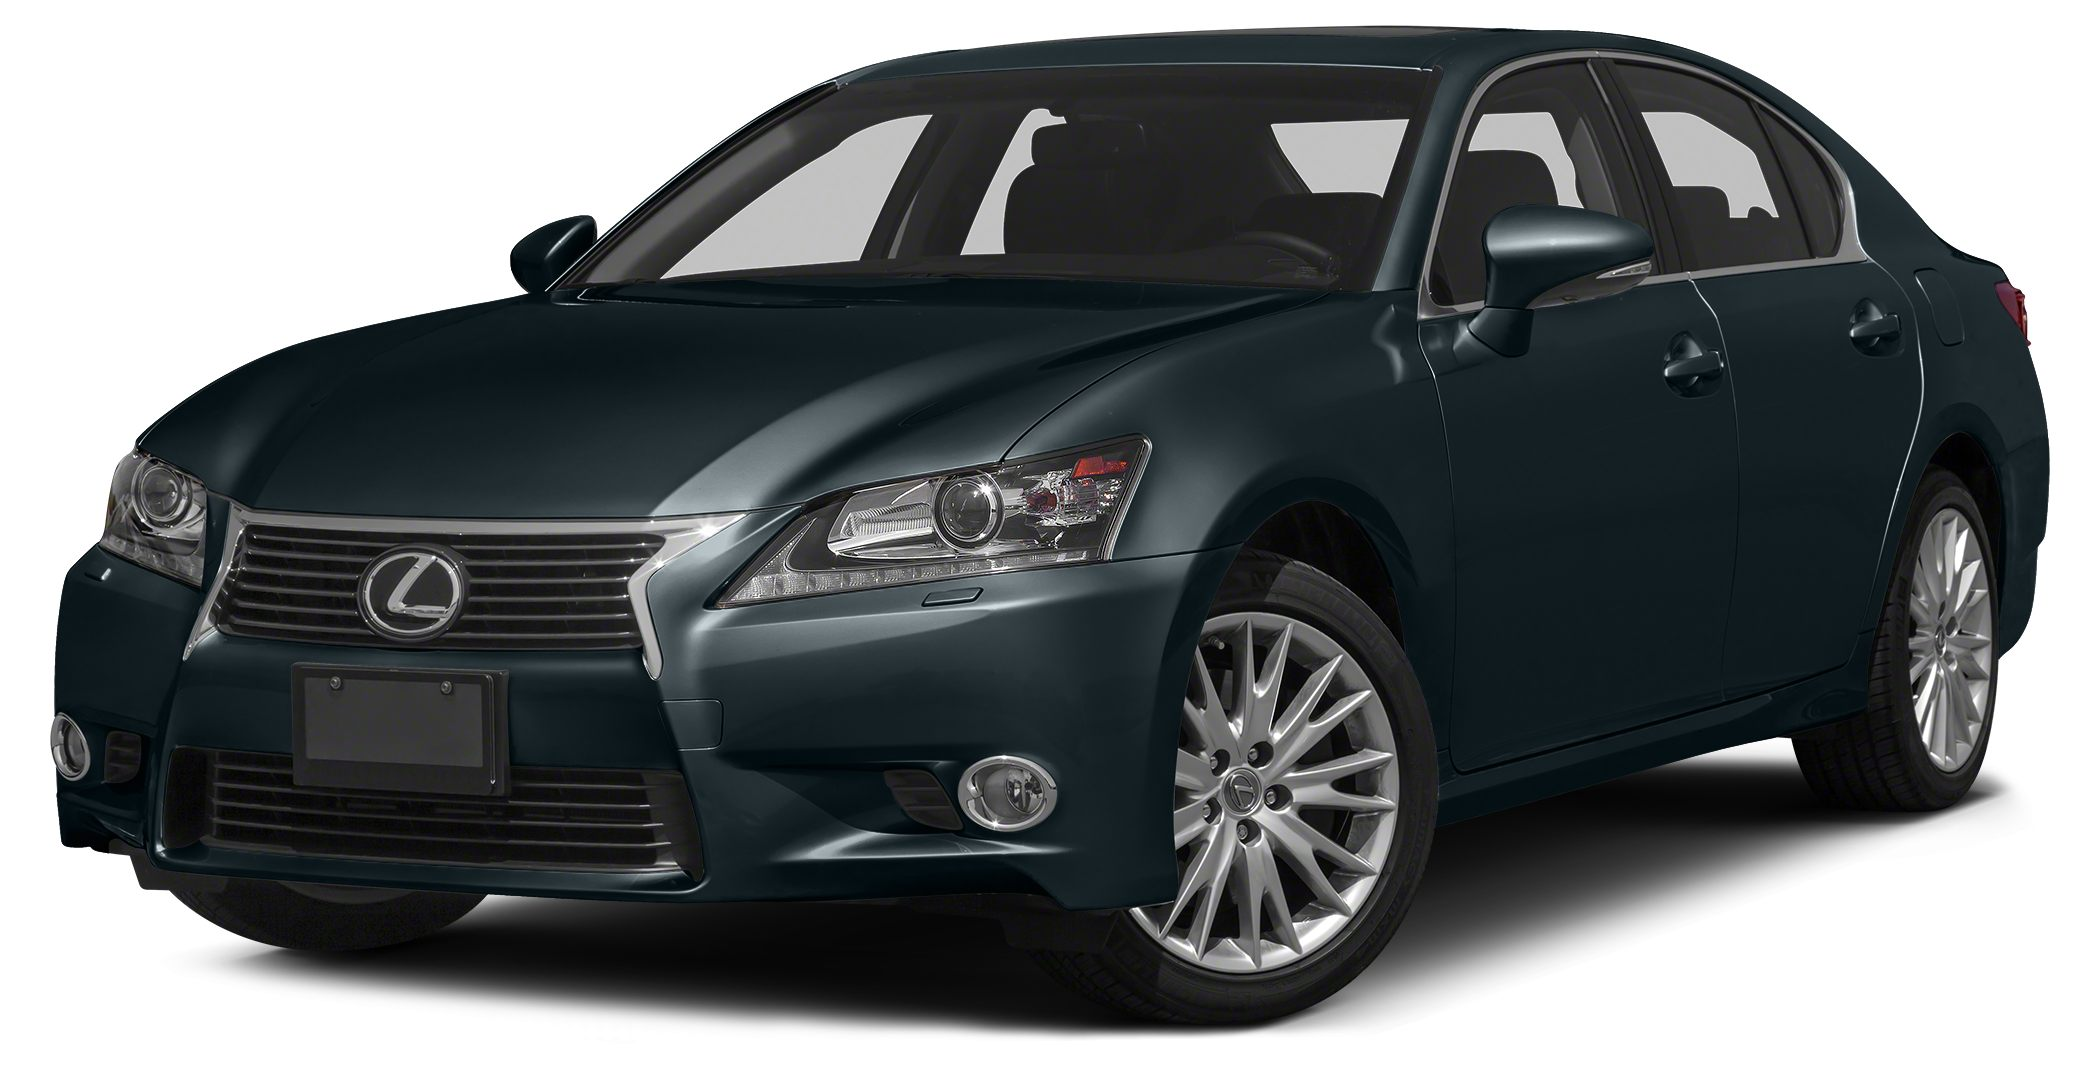 2013 Lexus GS 350 Base 1-OWNER F-SPORT Priced to SELL 2013 Lexus GS350 AWD F-SPORT Sedan